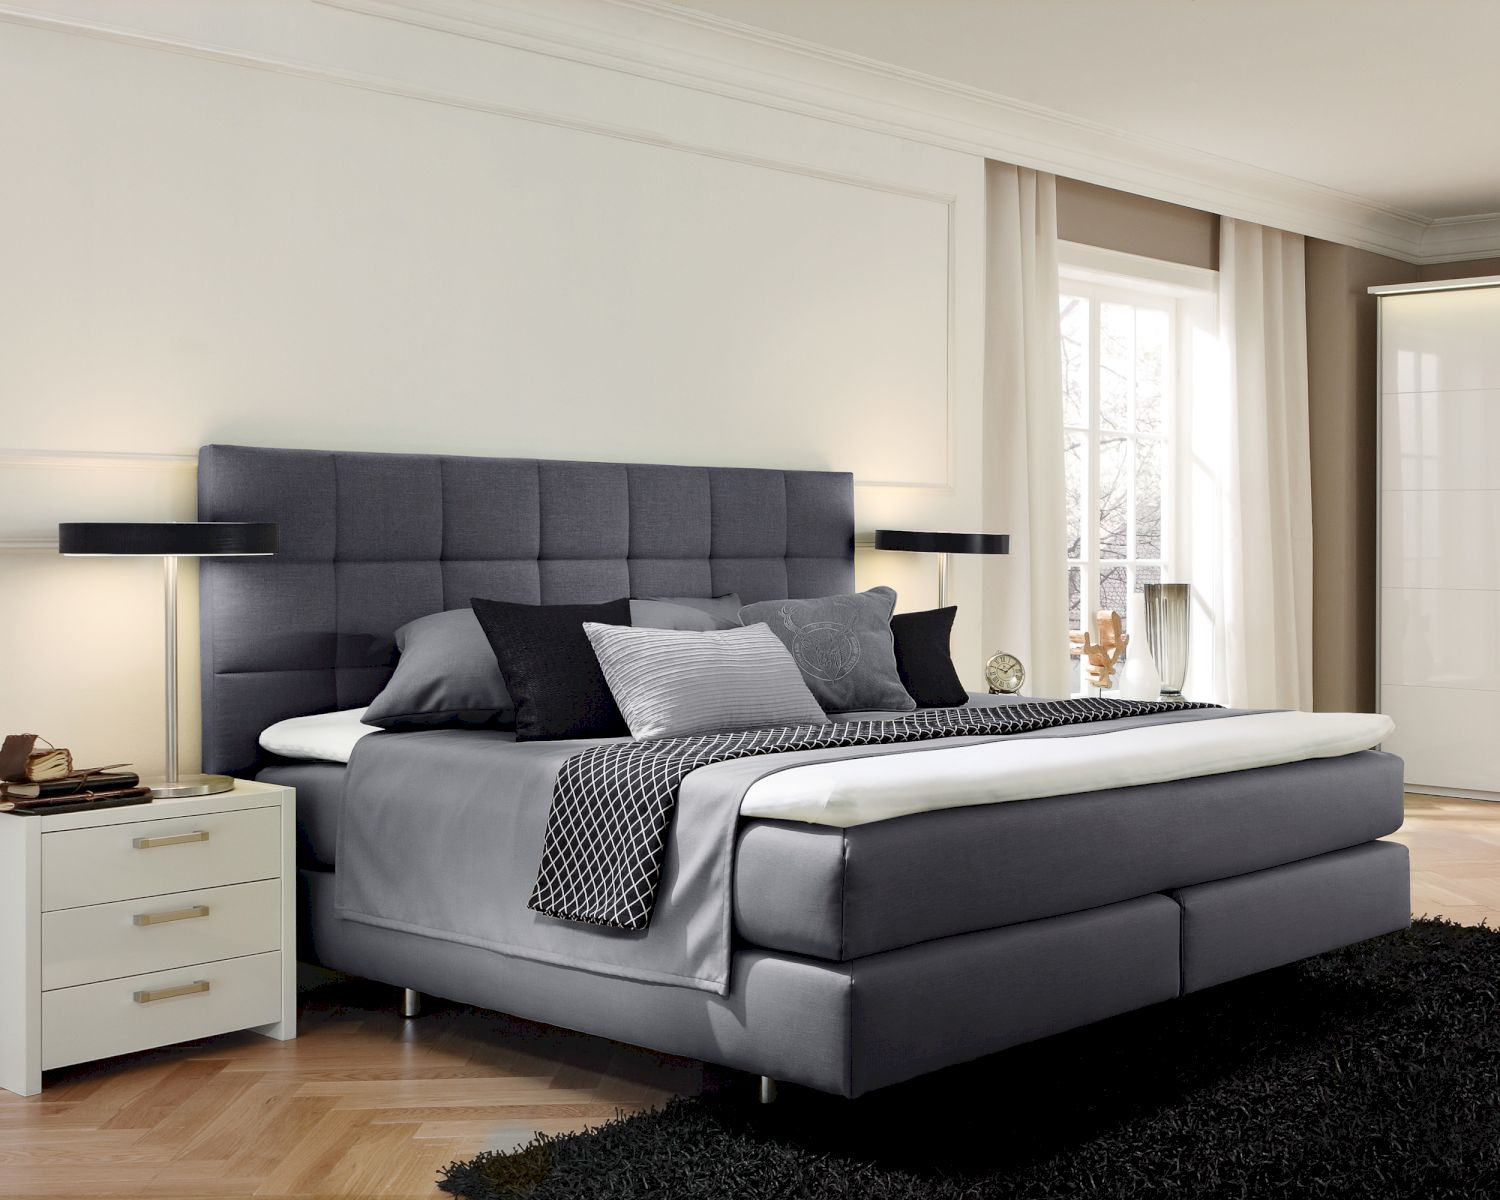 femira couture toronto q boxspringbett bei. Black Bedroom Furniture Sets. Home Design Ideas